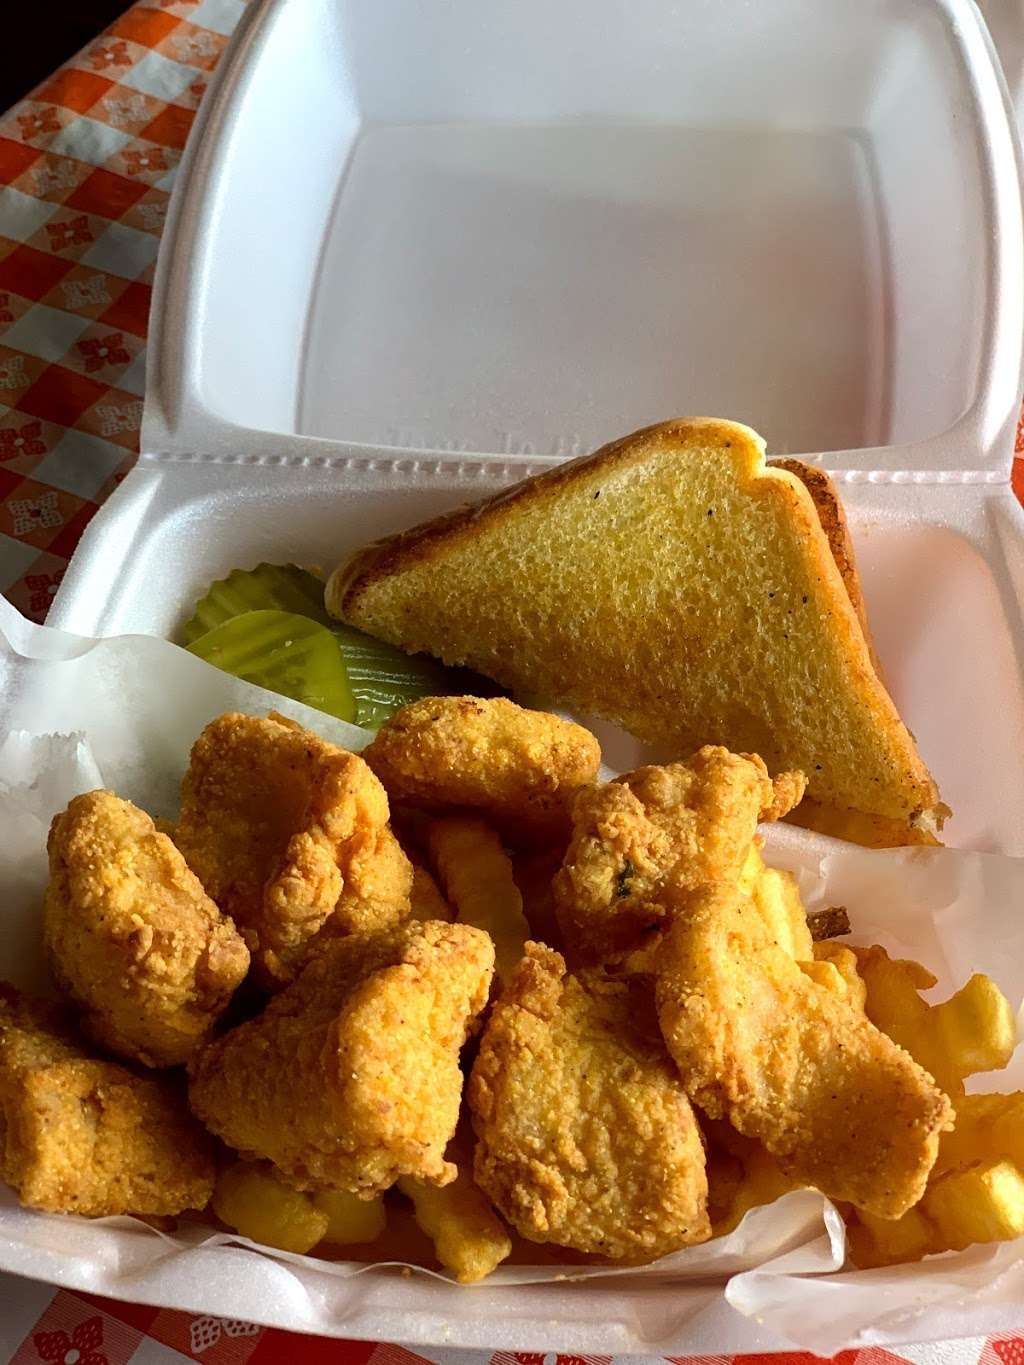 Sunday Morning Catfish and More - restaurant    Photo 3 of 10   Address: 1038 Pioneer Rd, Mesquite, TX 75149, USA   Phone: (214) 994-6476